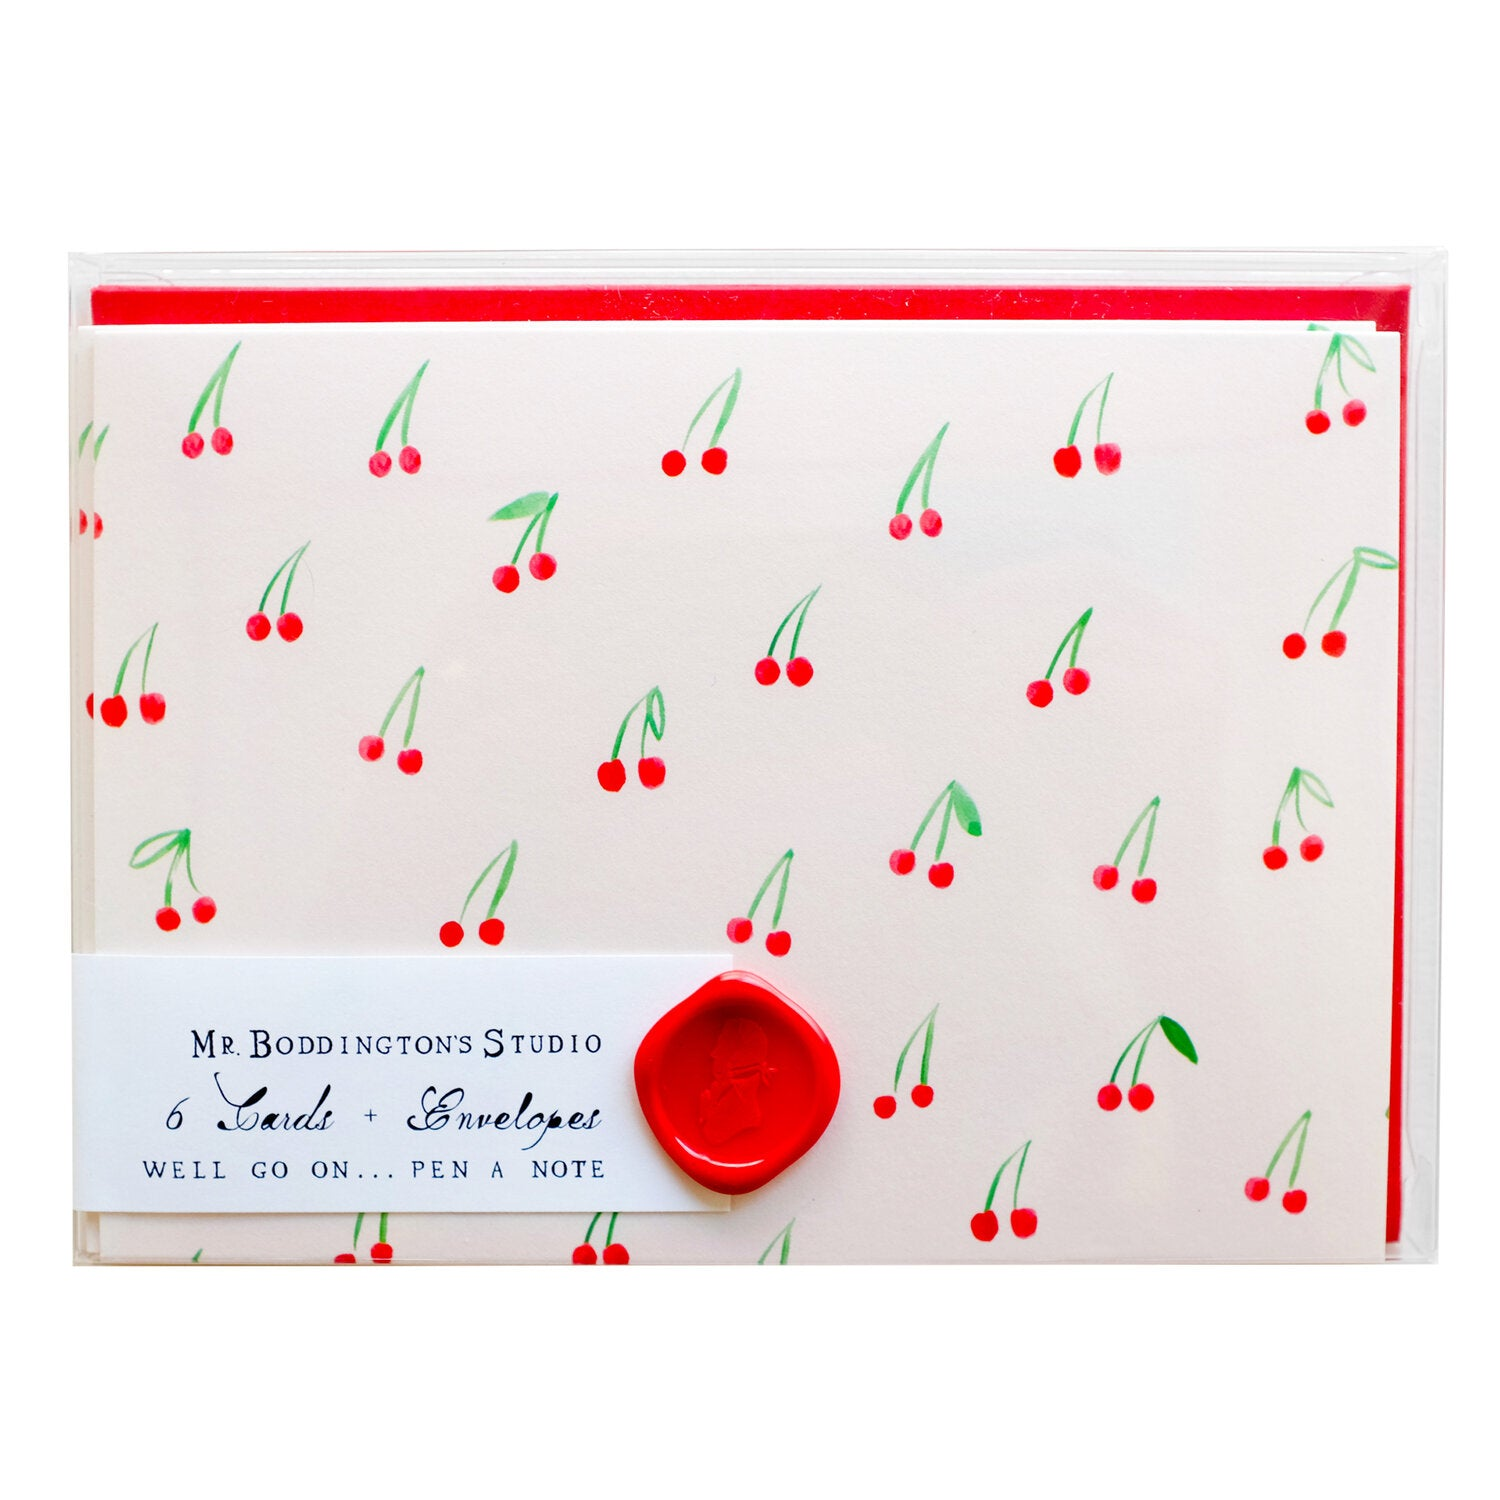 Mr. Boddington's Studio :: Boxed Cards, Cherries On Top, Set of 6